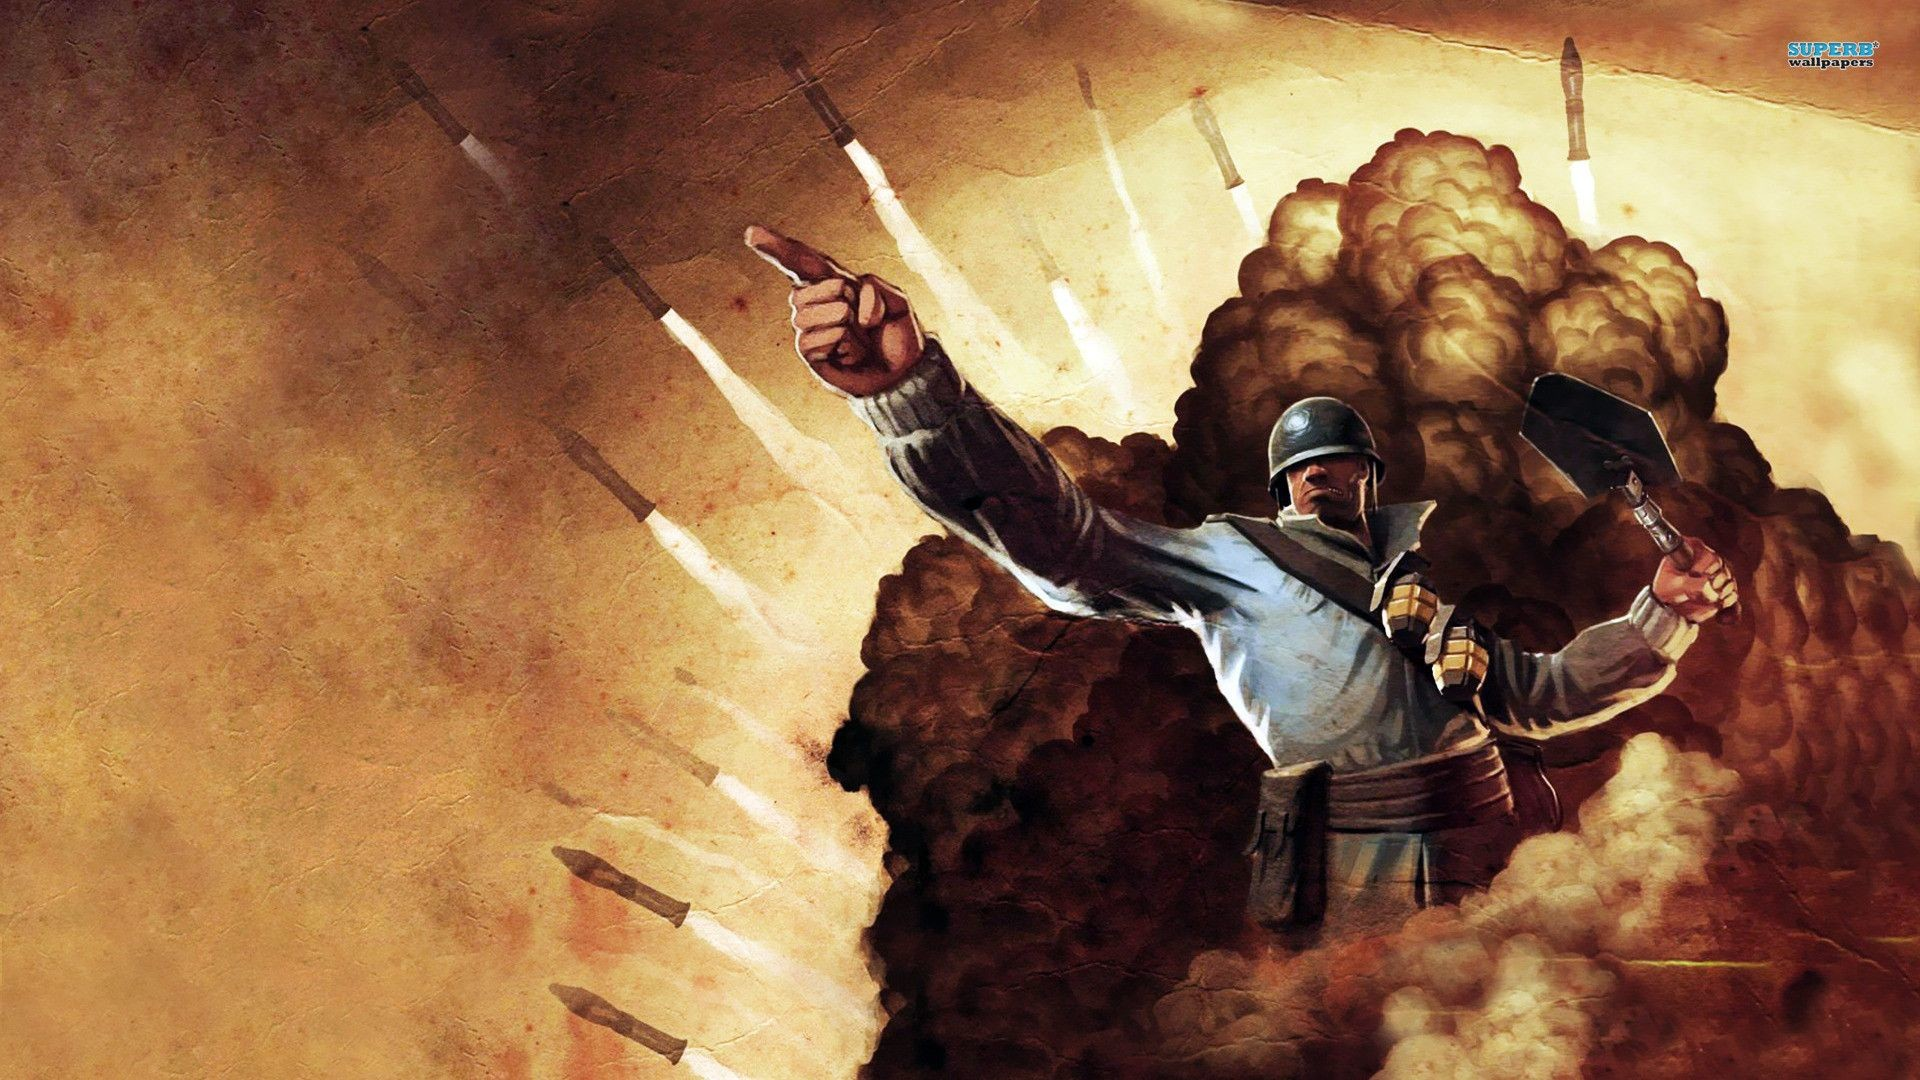 TF2 Soldier wallpaper – Game wallpapers – #